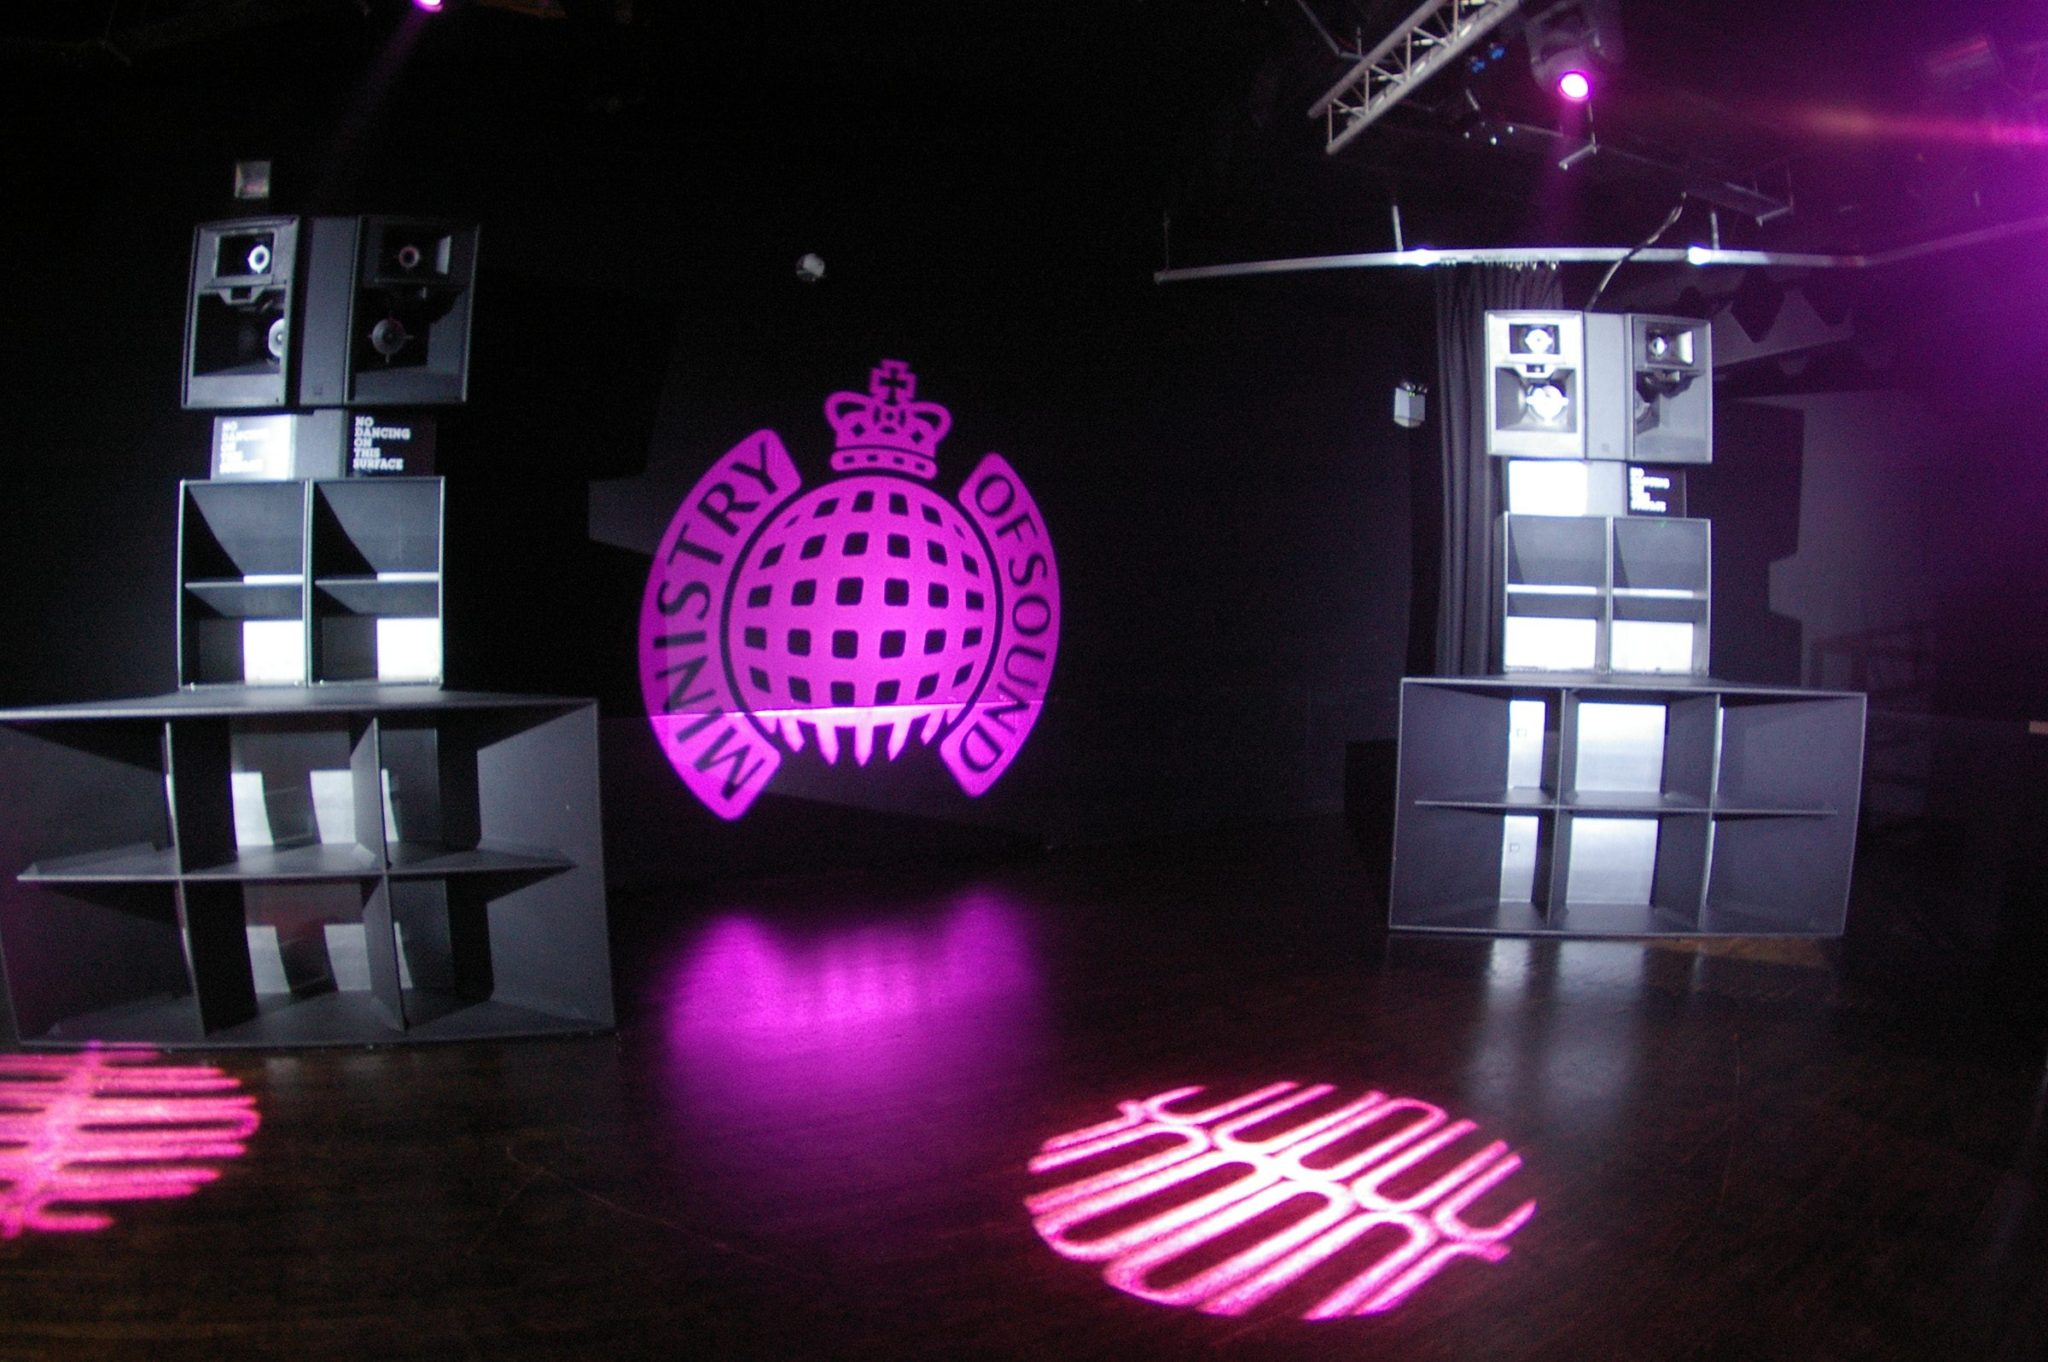 Ministry of sound has an irresistible lineup music and